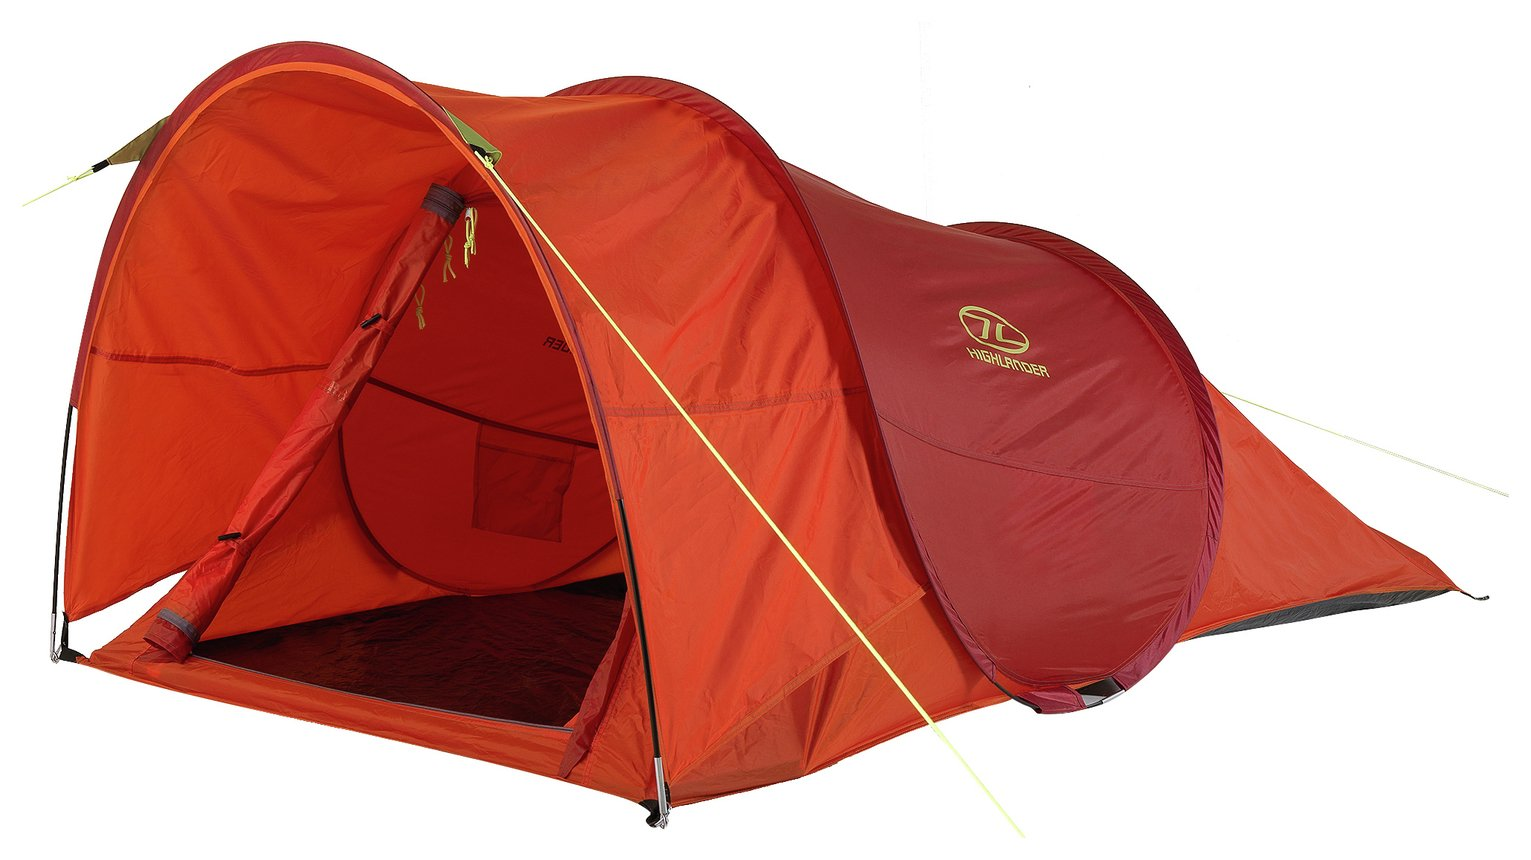 Image of Highlander - 2 Man Pop Up - Tent with Awning